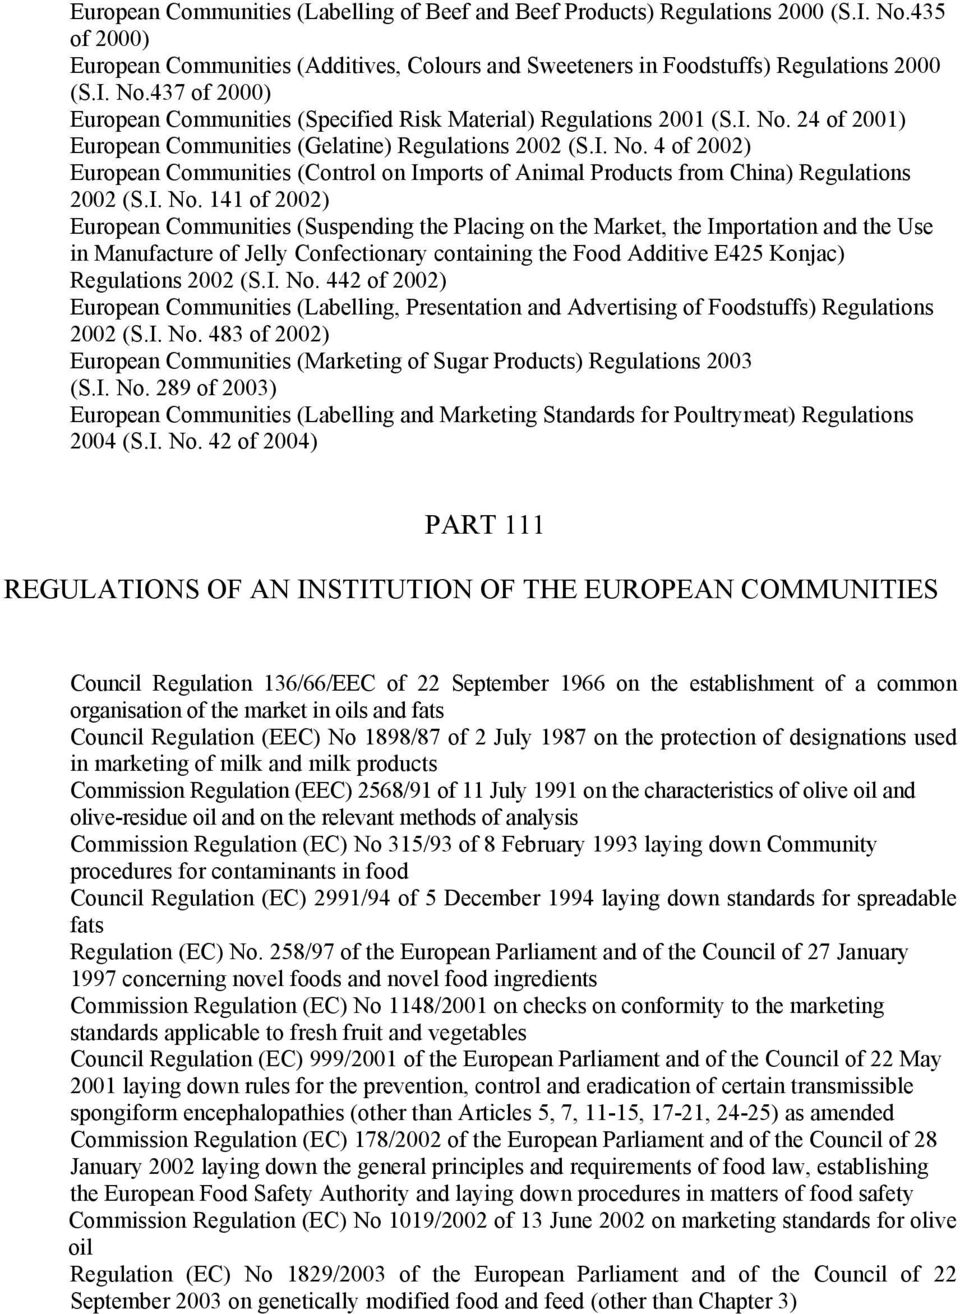 24 of 2001) European Communities (Gelatine) Regulations 2002 (S. 4 of 2002) European Communities (Control on Imports of Animal Products from China) Regulations 2002 (S.